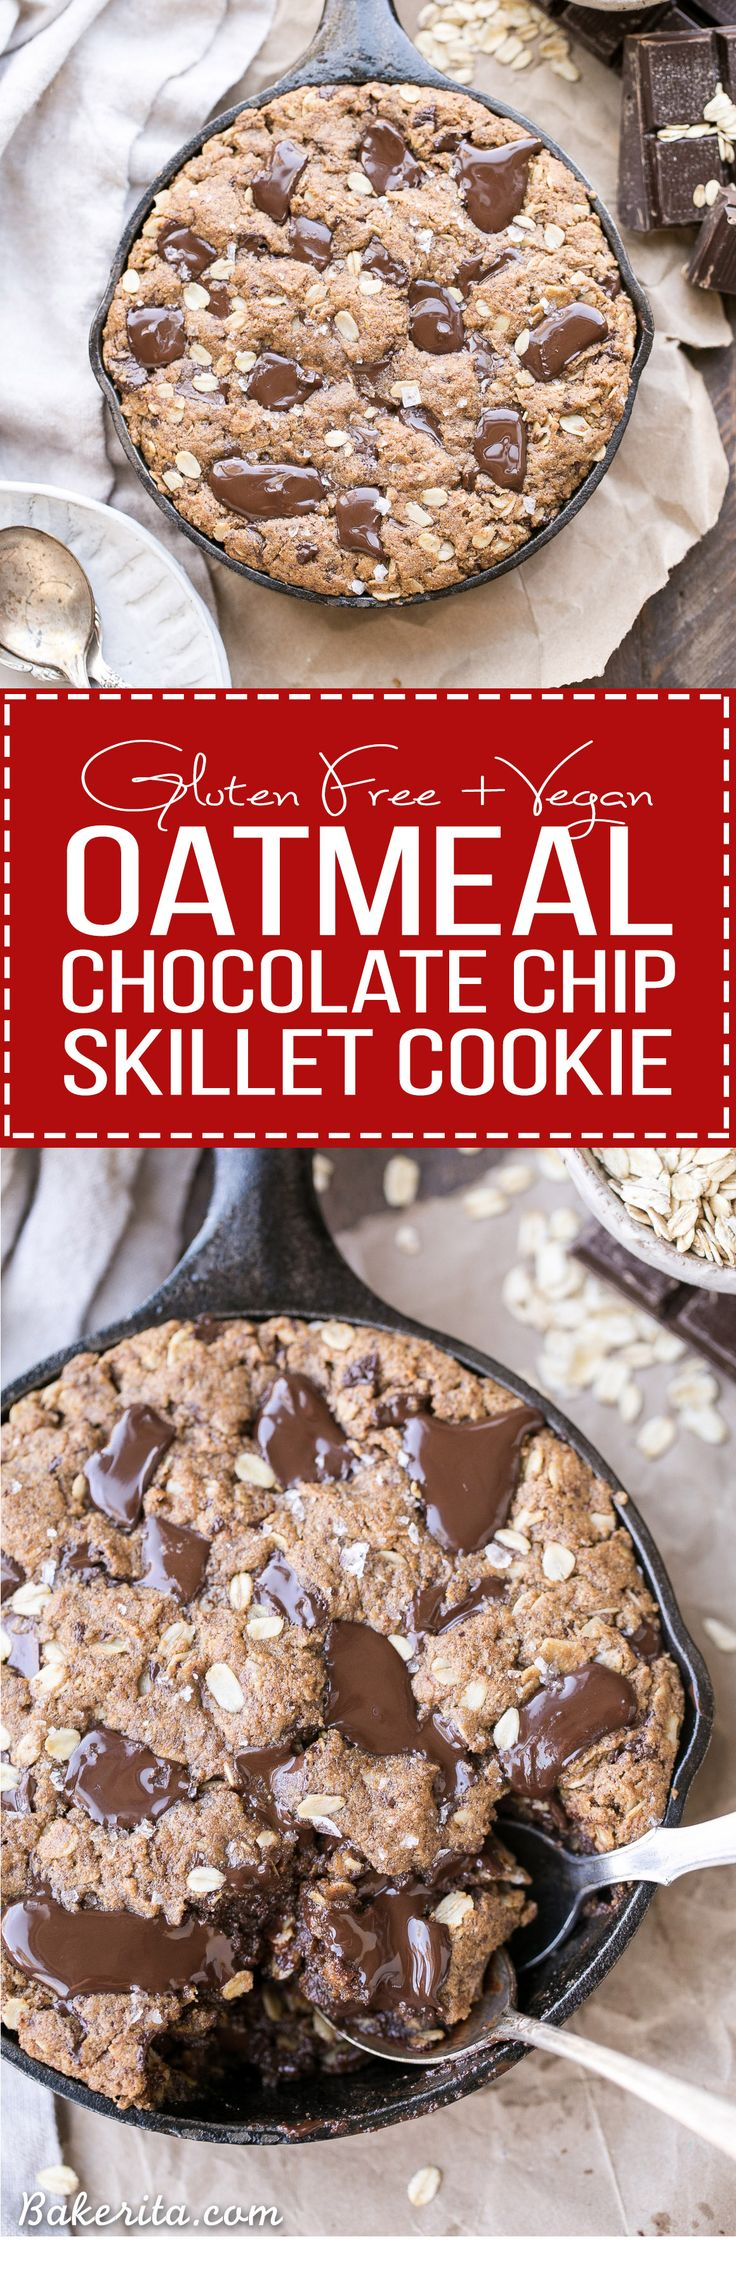 This Oatmeal Chocolate Chip Skillet Cookie is the ultimate thick, gooey oatmeal cookie! This gluten-free and vegan dessert is loaded with gooey chocolate. This one is sure to satisfy your chocolate cravings!